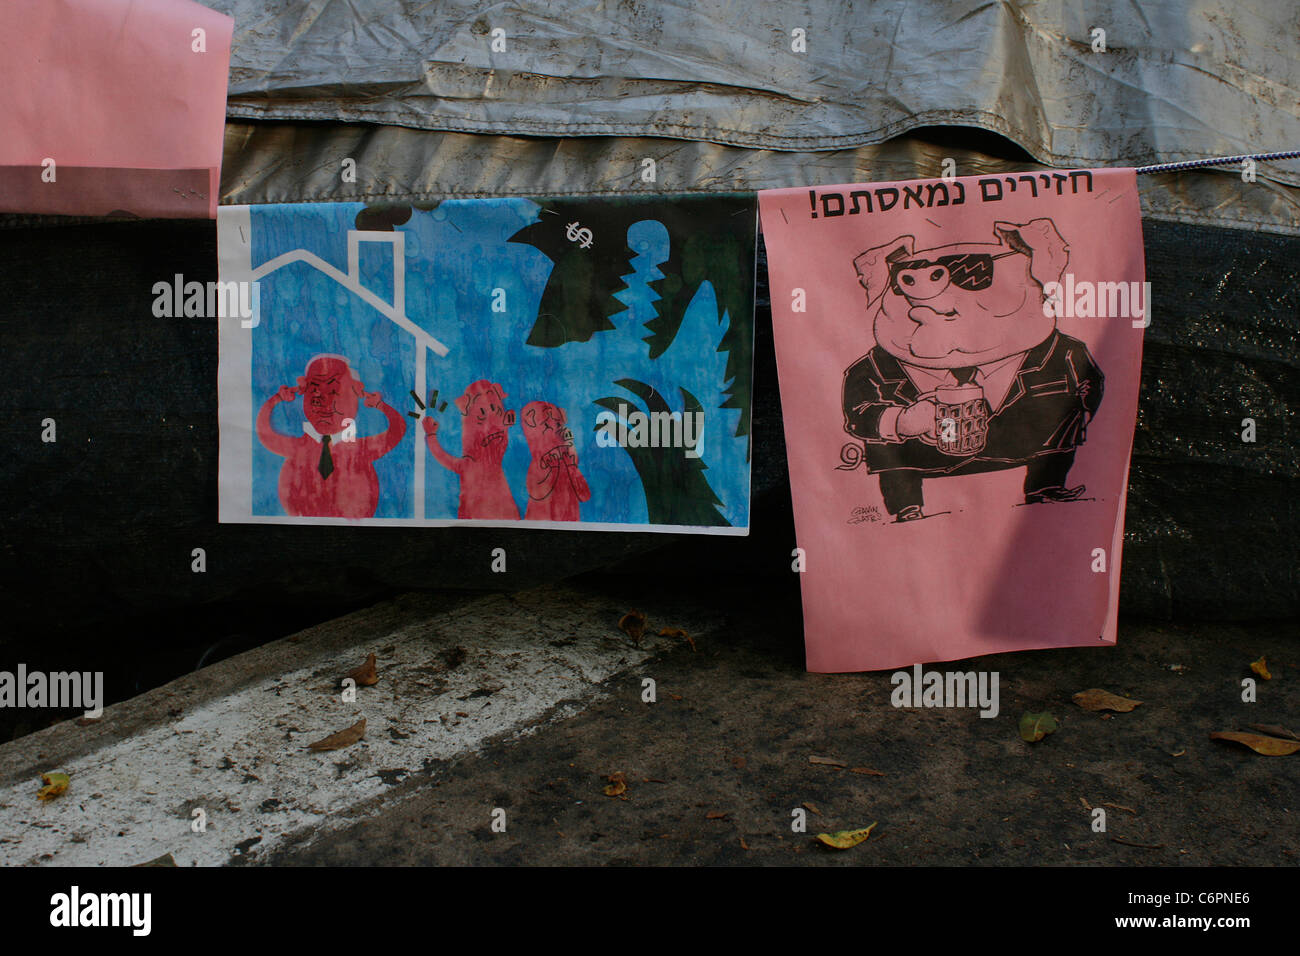 Cynical posters against the social inequality in Israel hanged up from activists in a tent city in Tel Aviv, Israel. - Stock Image